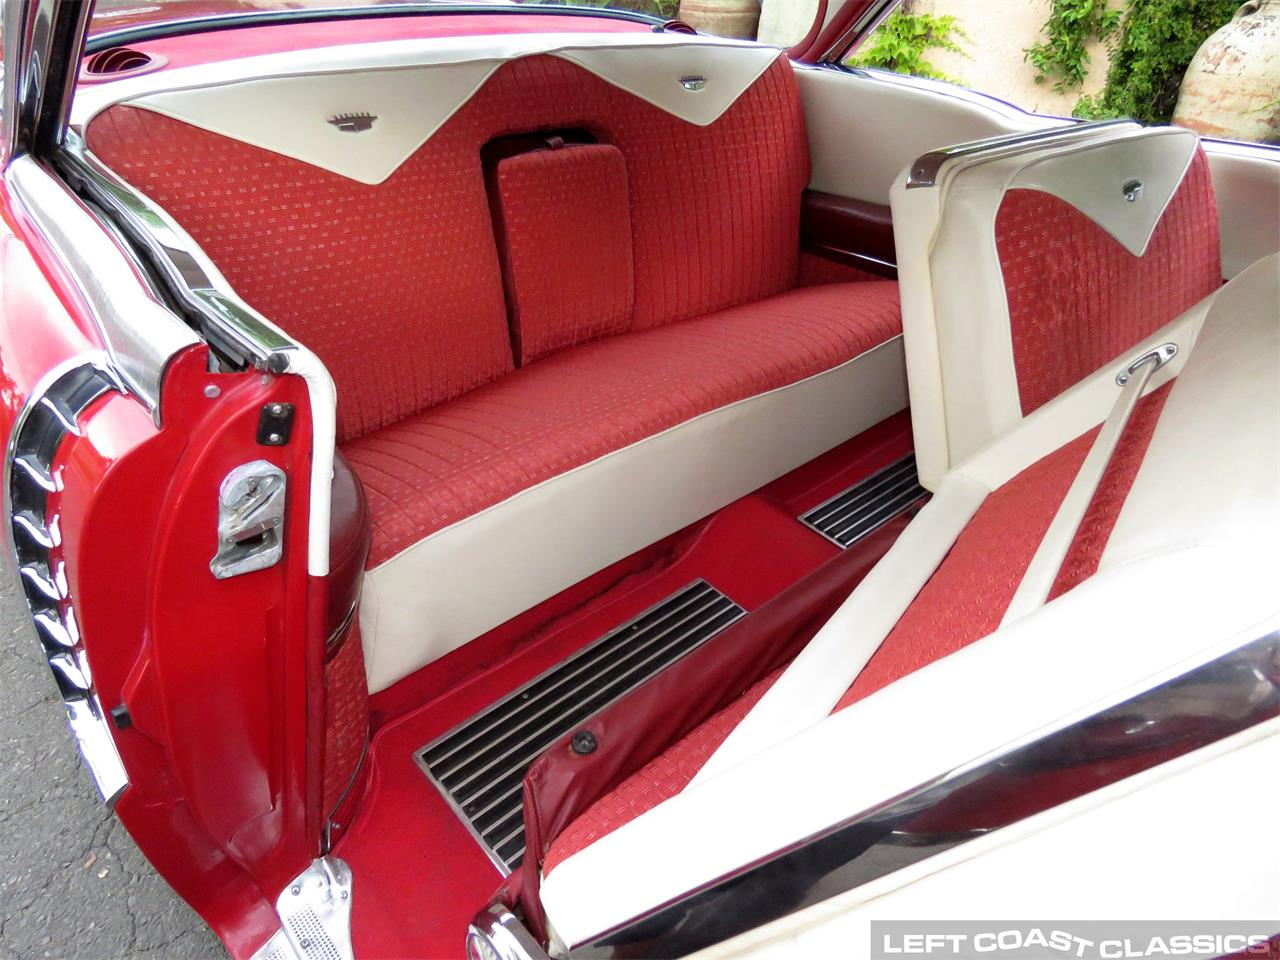 Large Picture of Classic '56 Cadillac Eldorado Seville located in California - $39,500.00 Offered by Left Coast Classics - QD3M